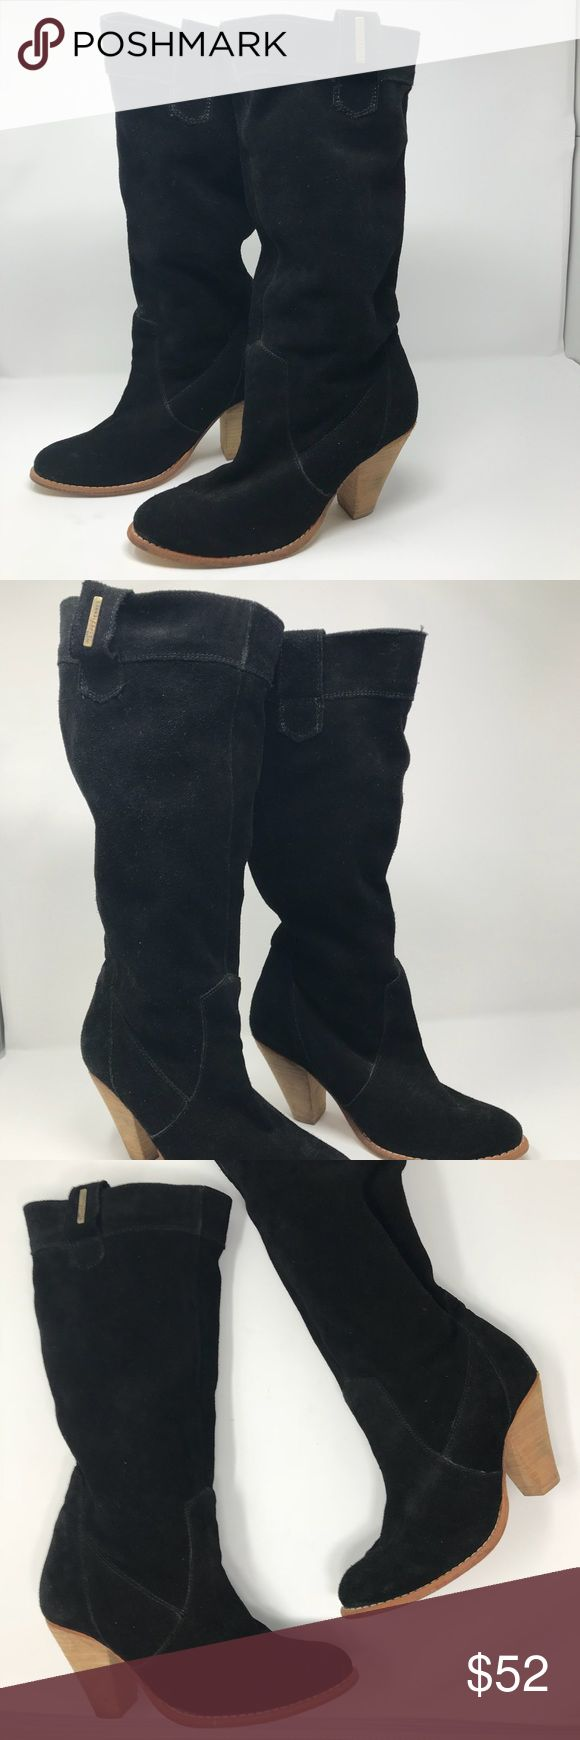 Les Tropeziennes Black Suede booties size 37 Les Tropeziennes Black Suede booties size 37 in good condition. Made in India. Les Tropeziennes Shoes Heeled Boots